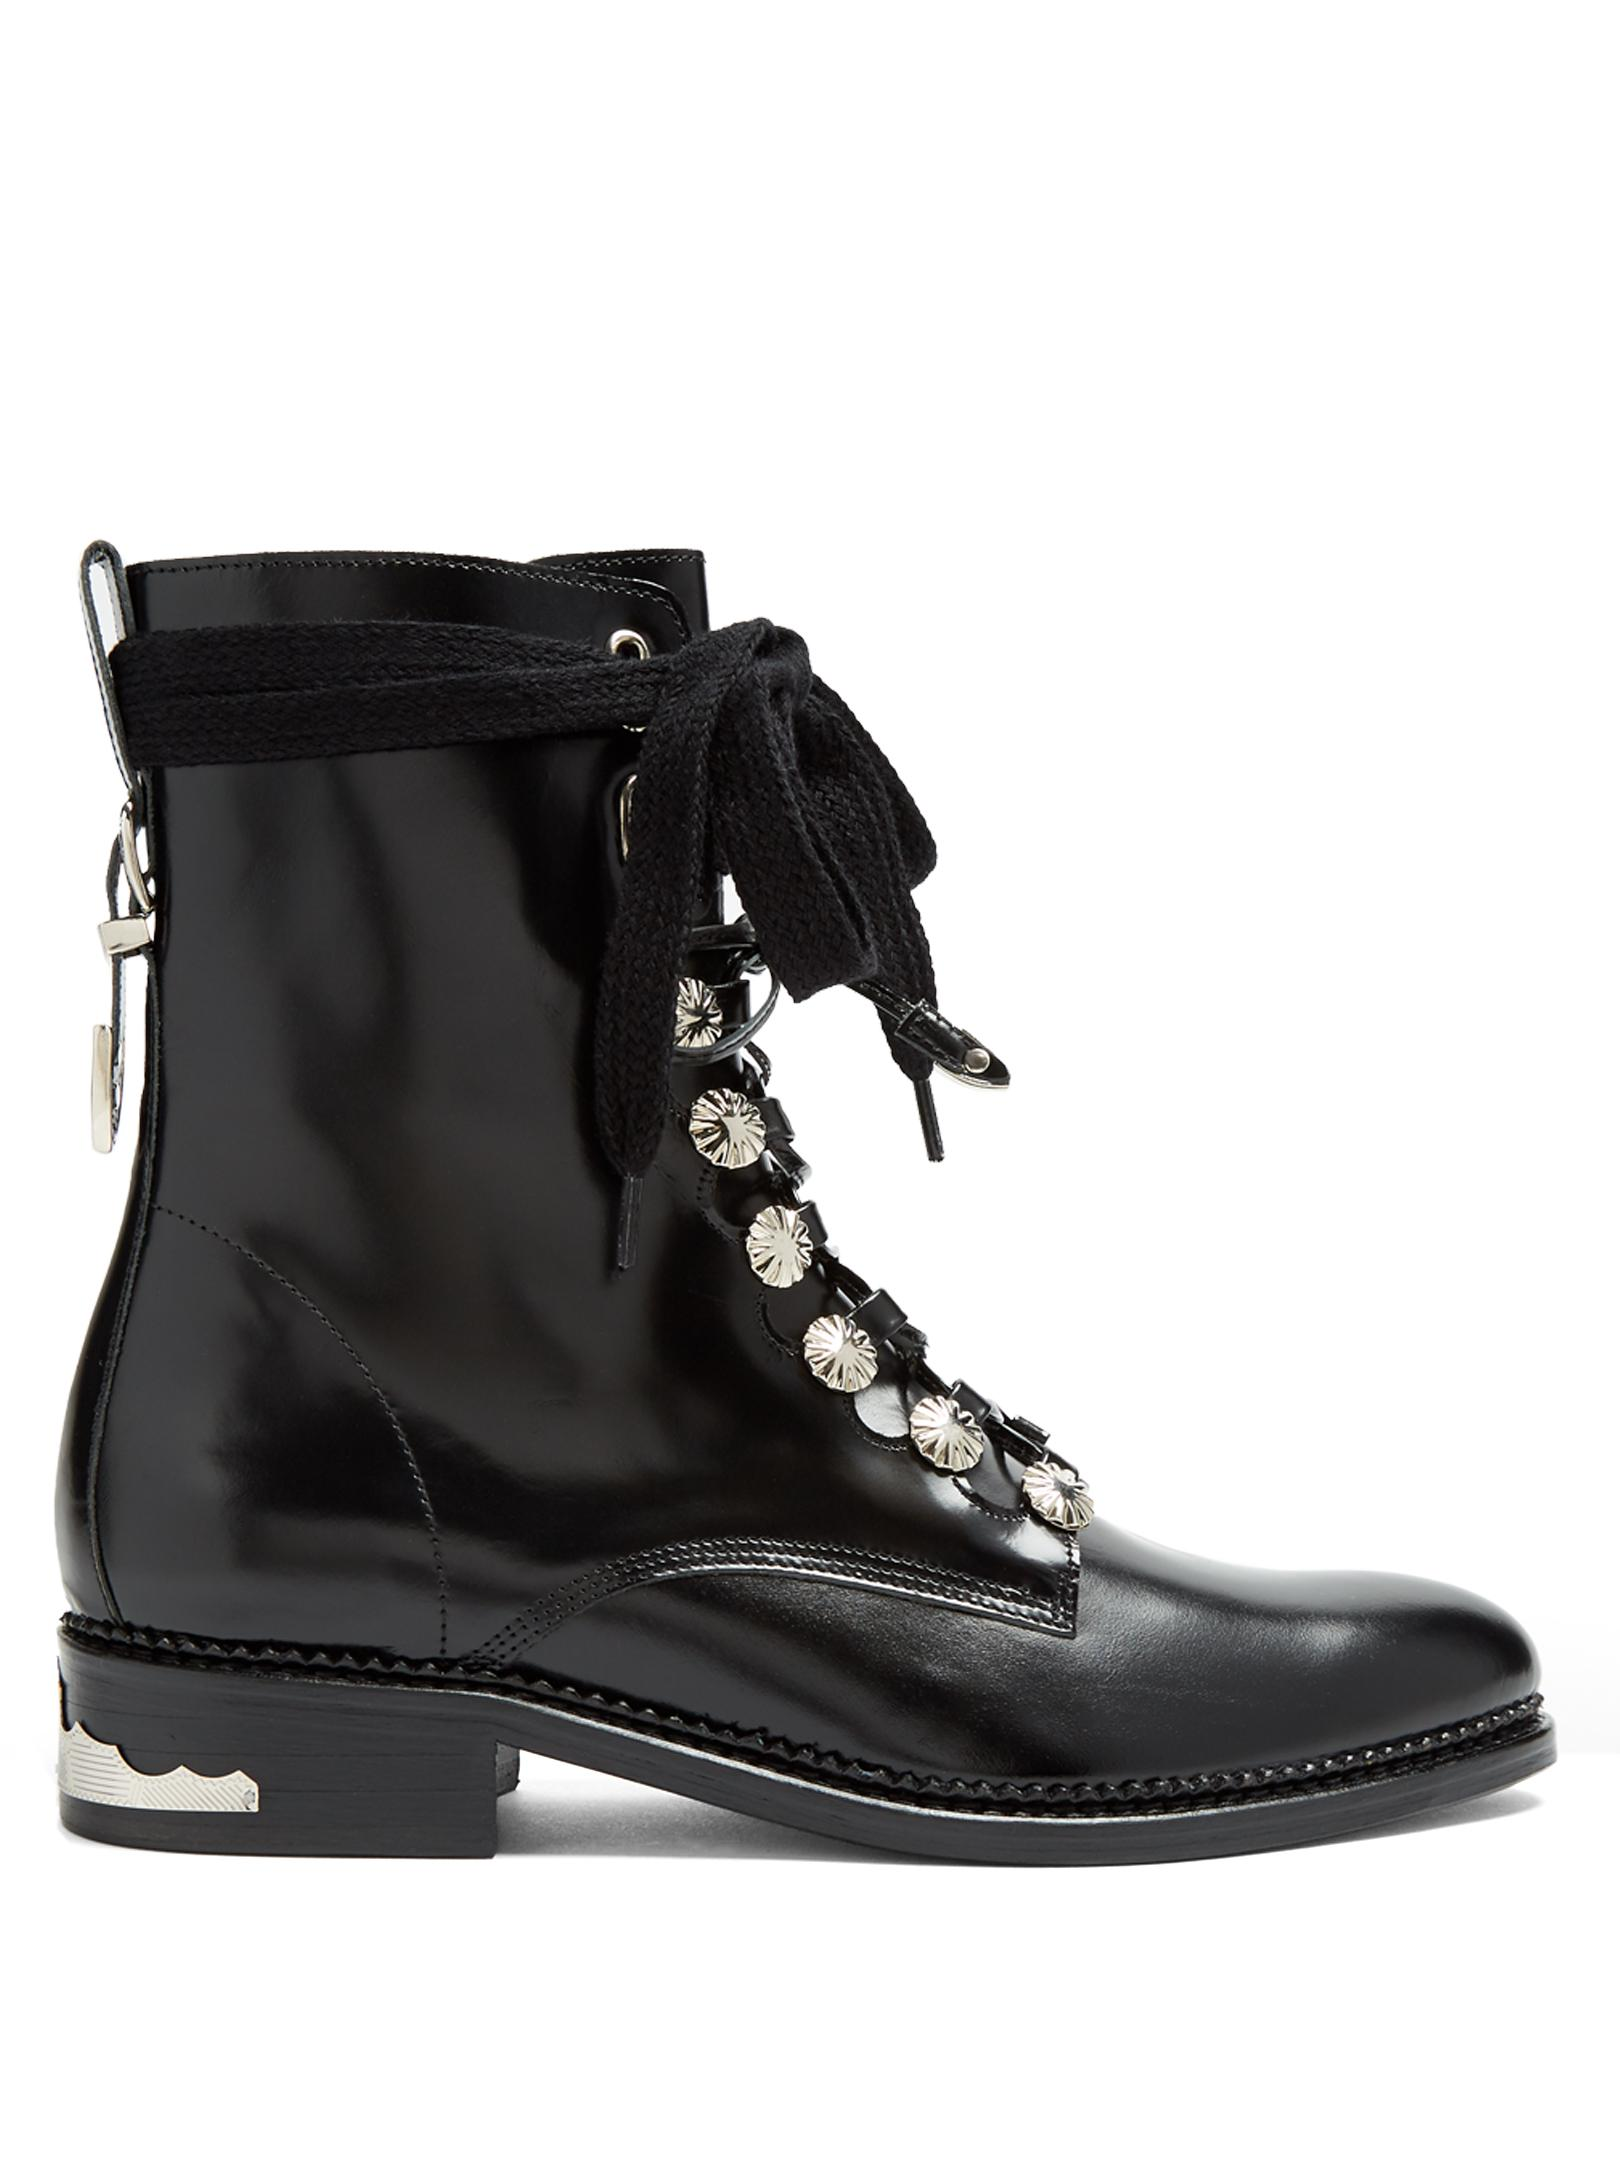 Toga Kiltie Leather Ankle Boots